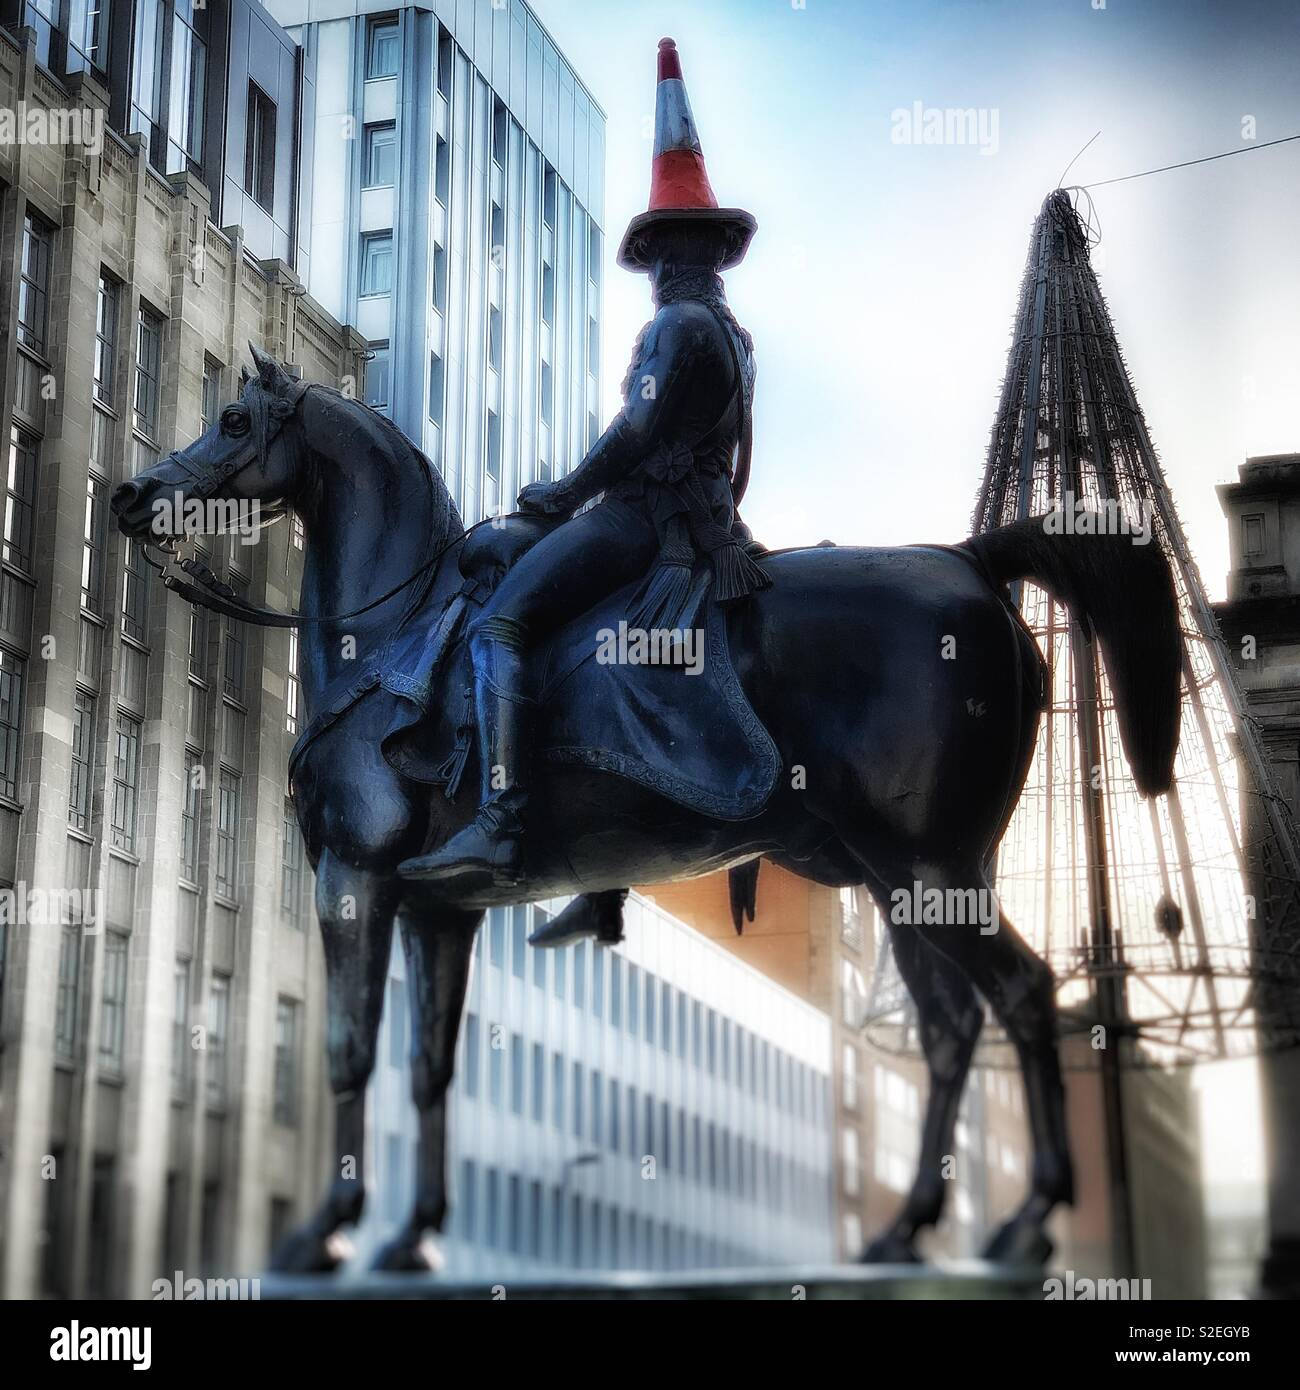 Duke of Wellington Statue, Glasgow, with Traffic Cone on his head. - Stock Image